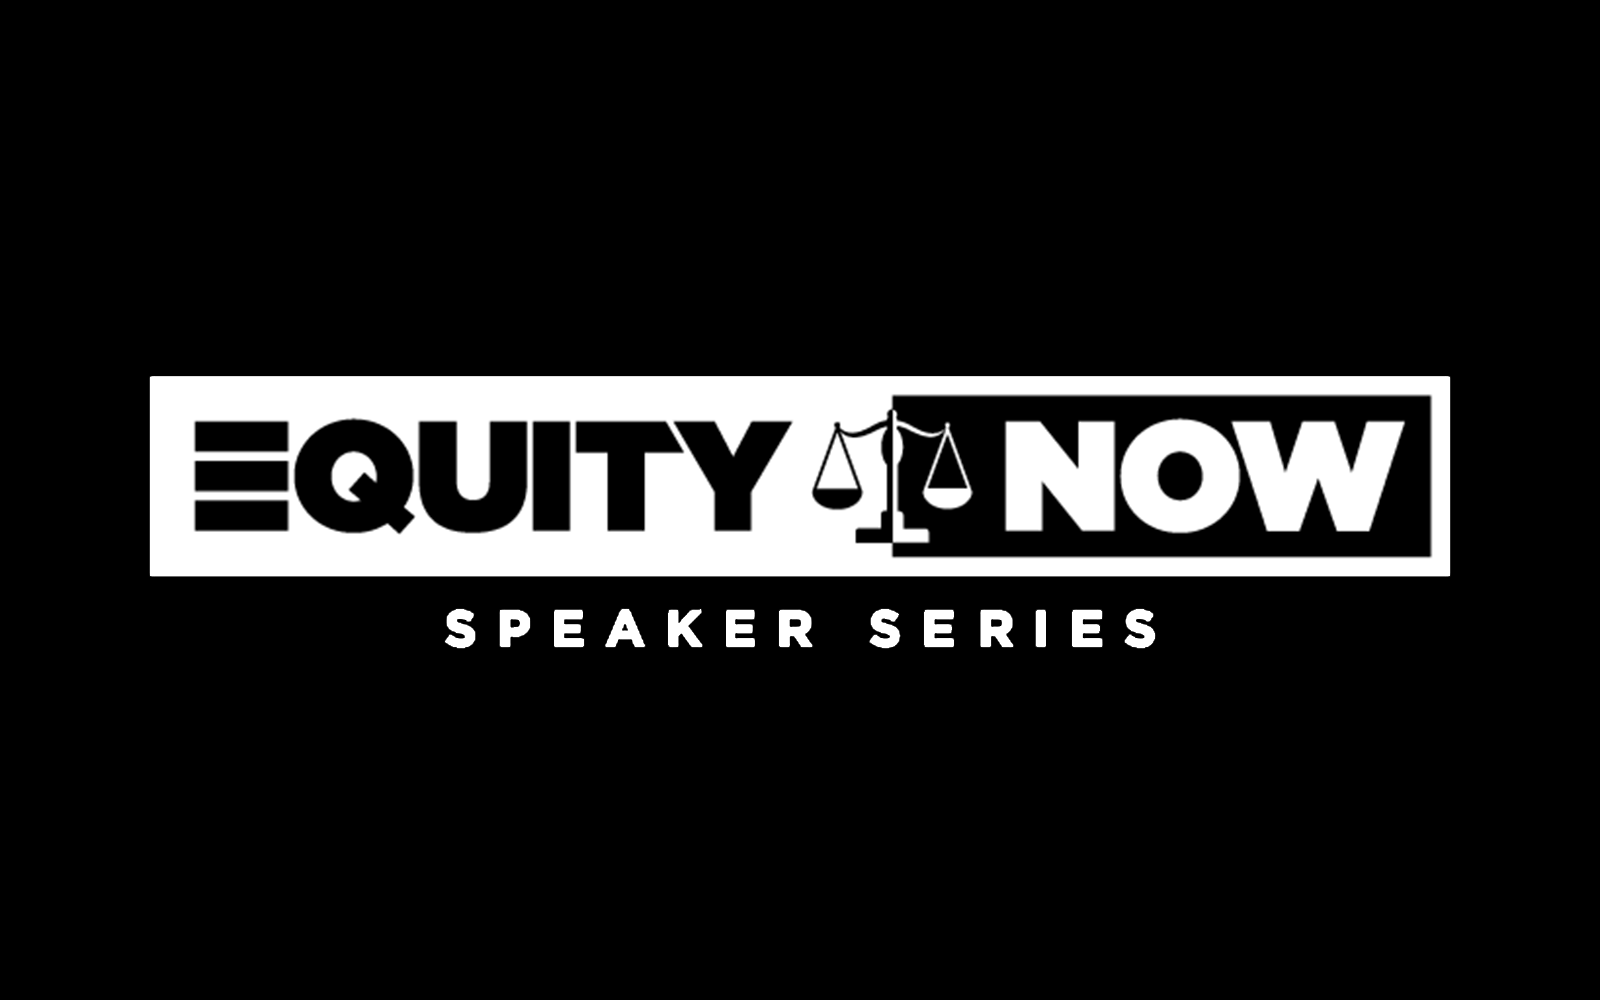 Image of Equity Now Speaker Series on black background